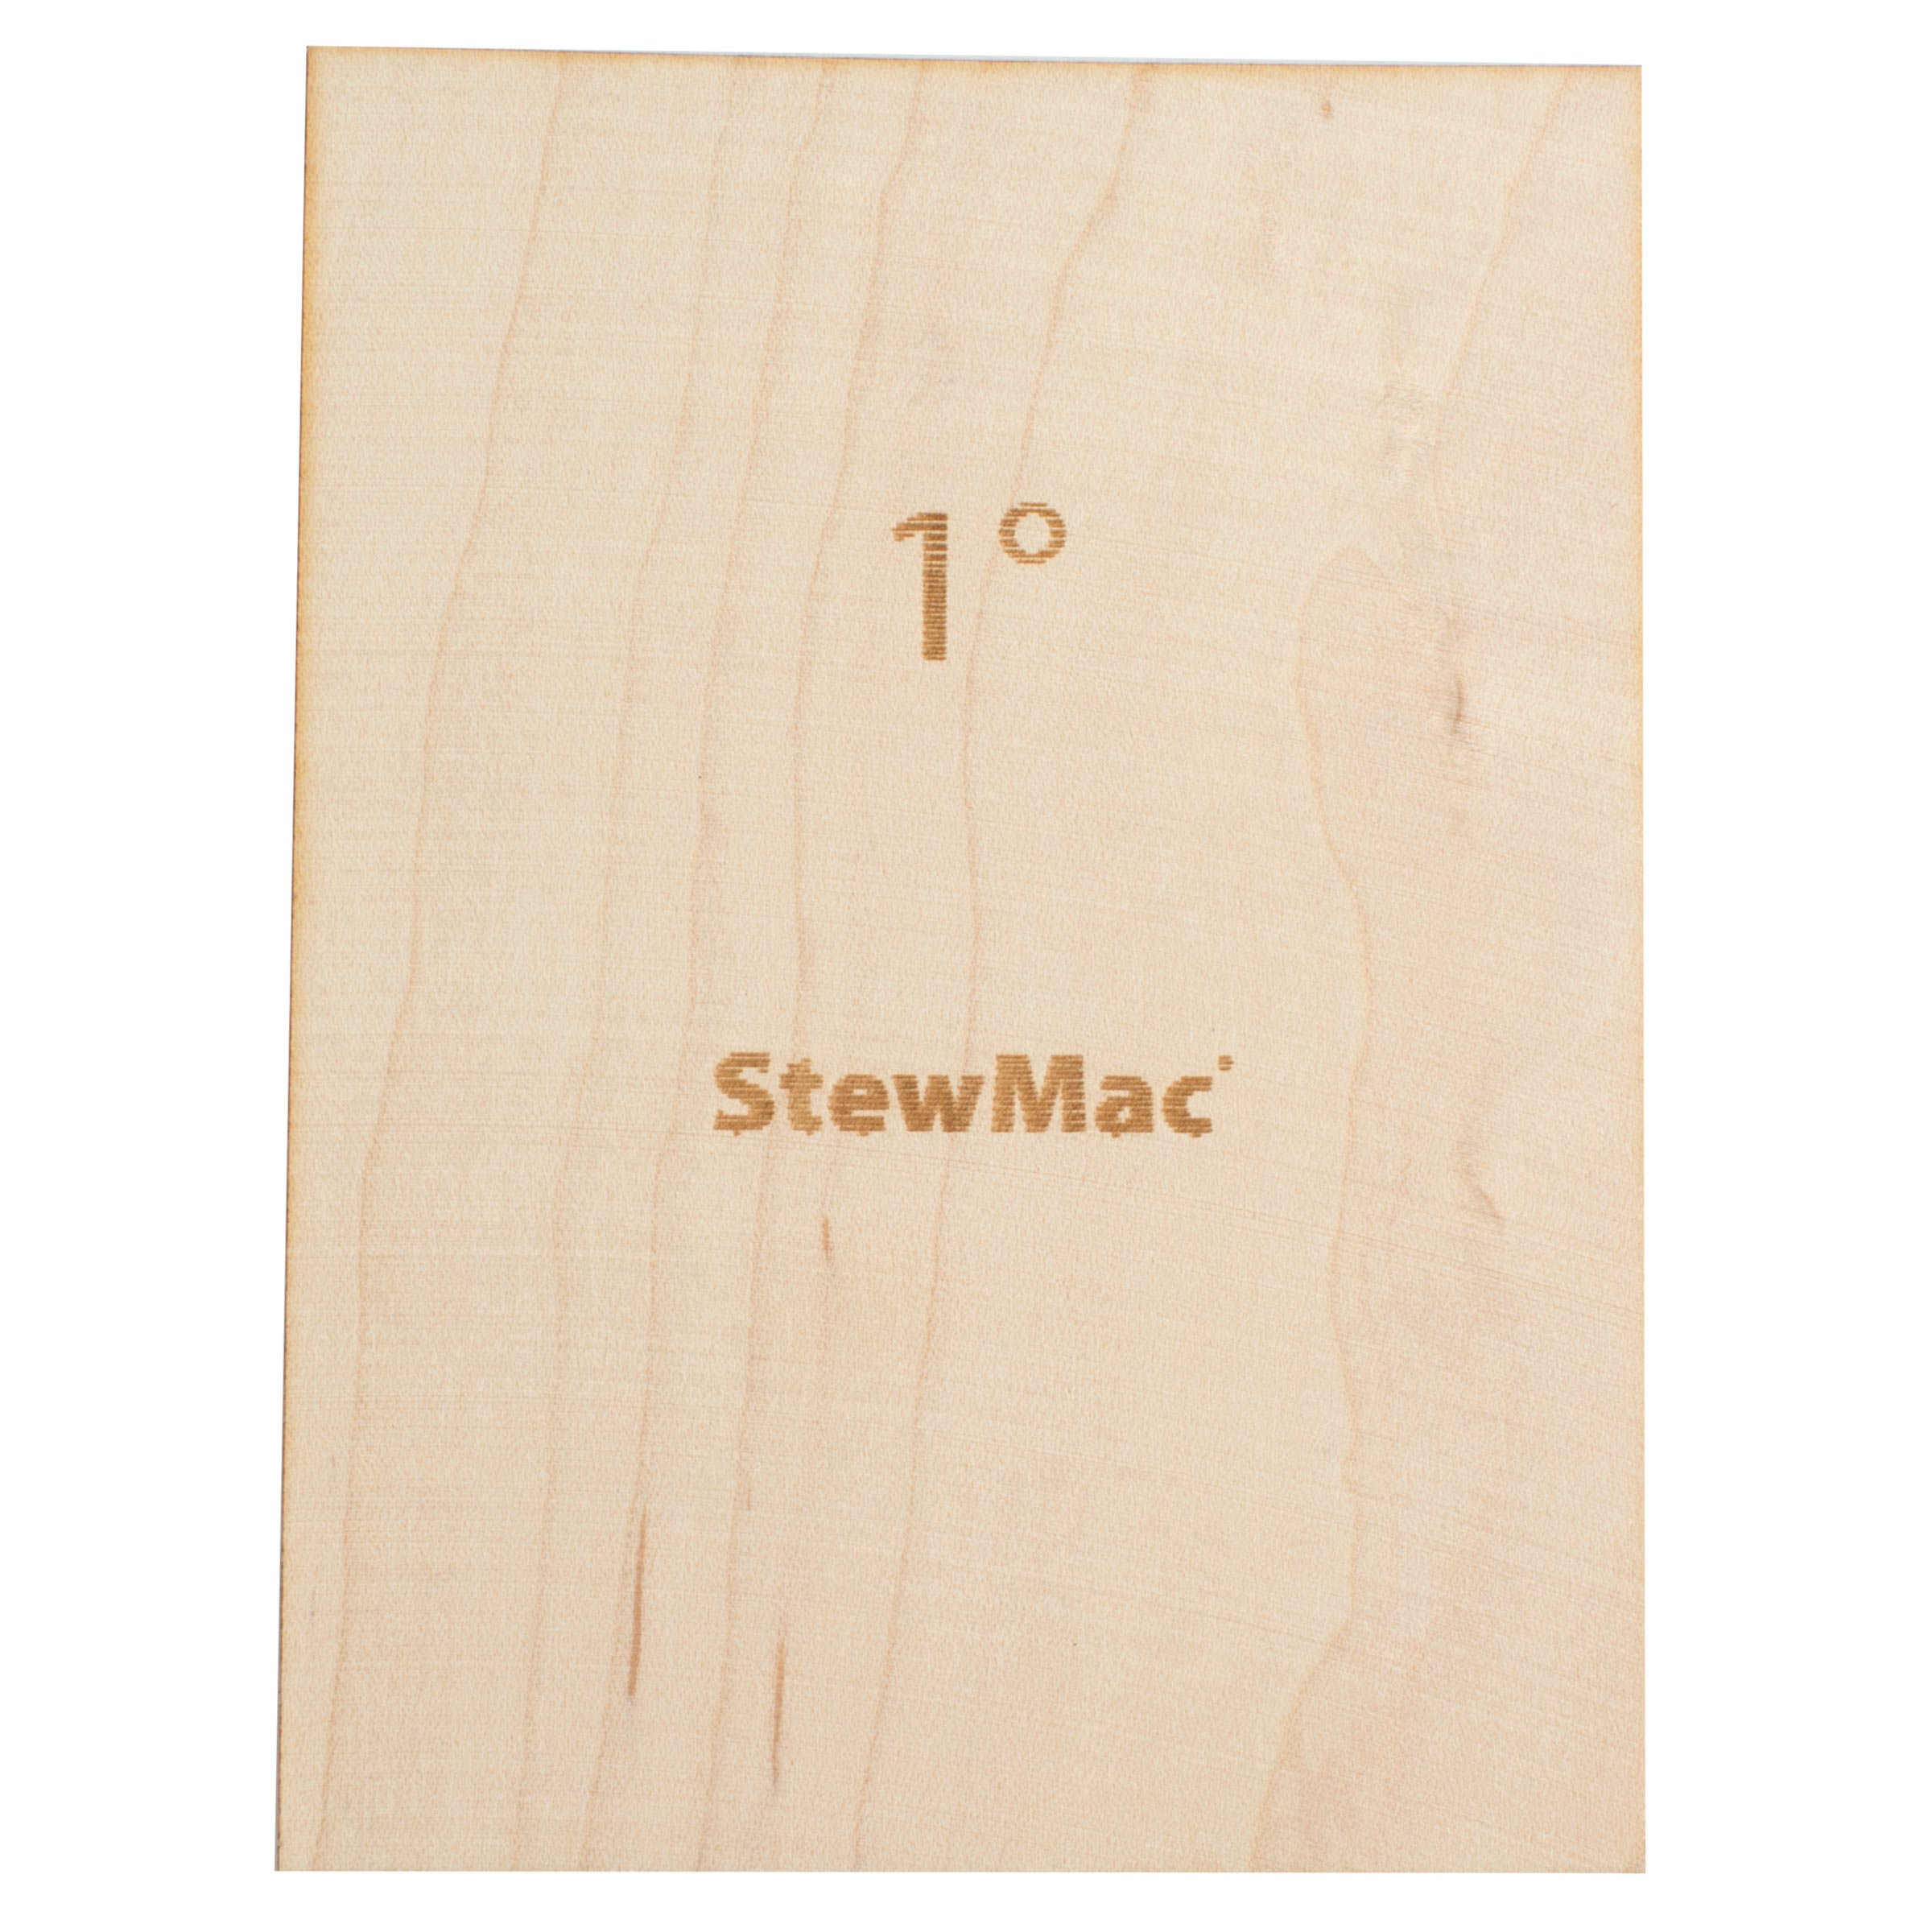 StewMac Neck Shims for Bass, Blank - 6 Pack of 1 Degree Shims